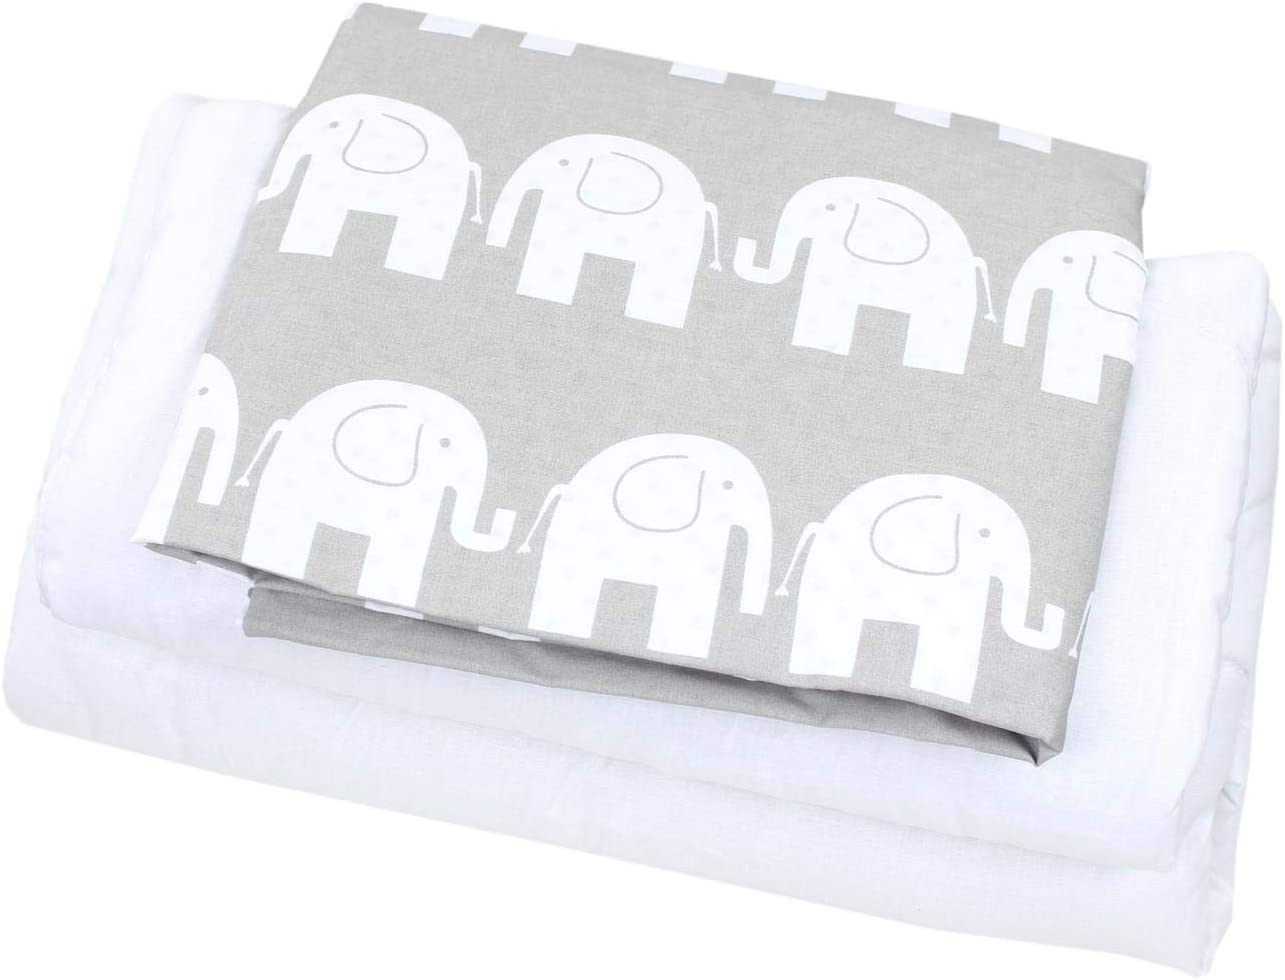 TupTam Baby Pram Crib Bedding Set Duvet and Pillow 4 pieces 80x80 cm Drops White//Drops Gray